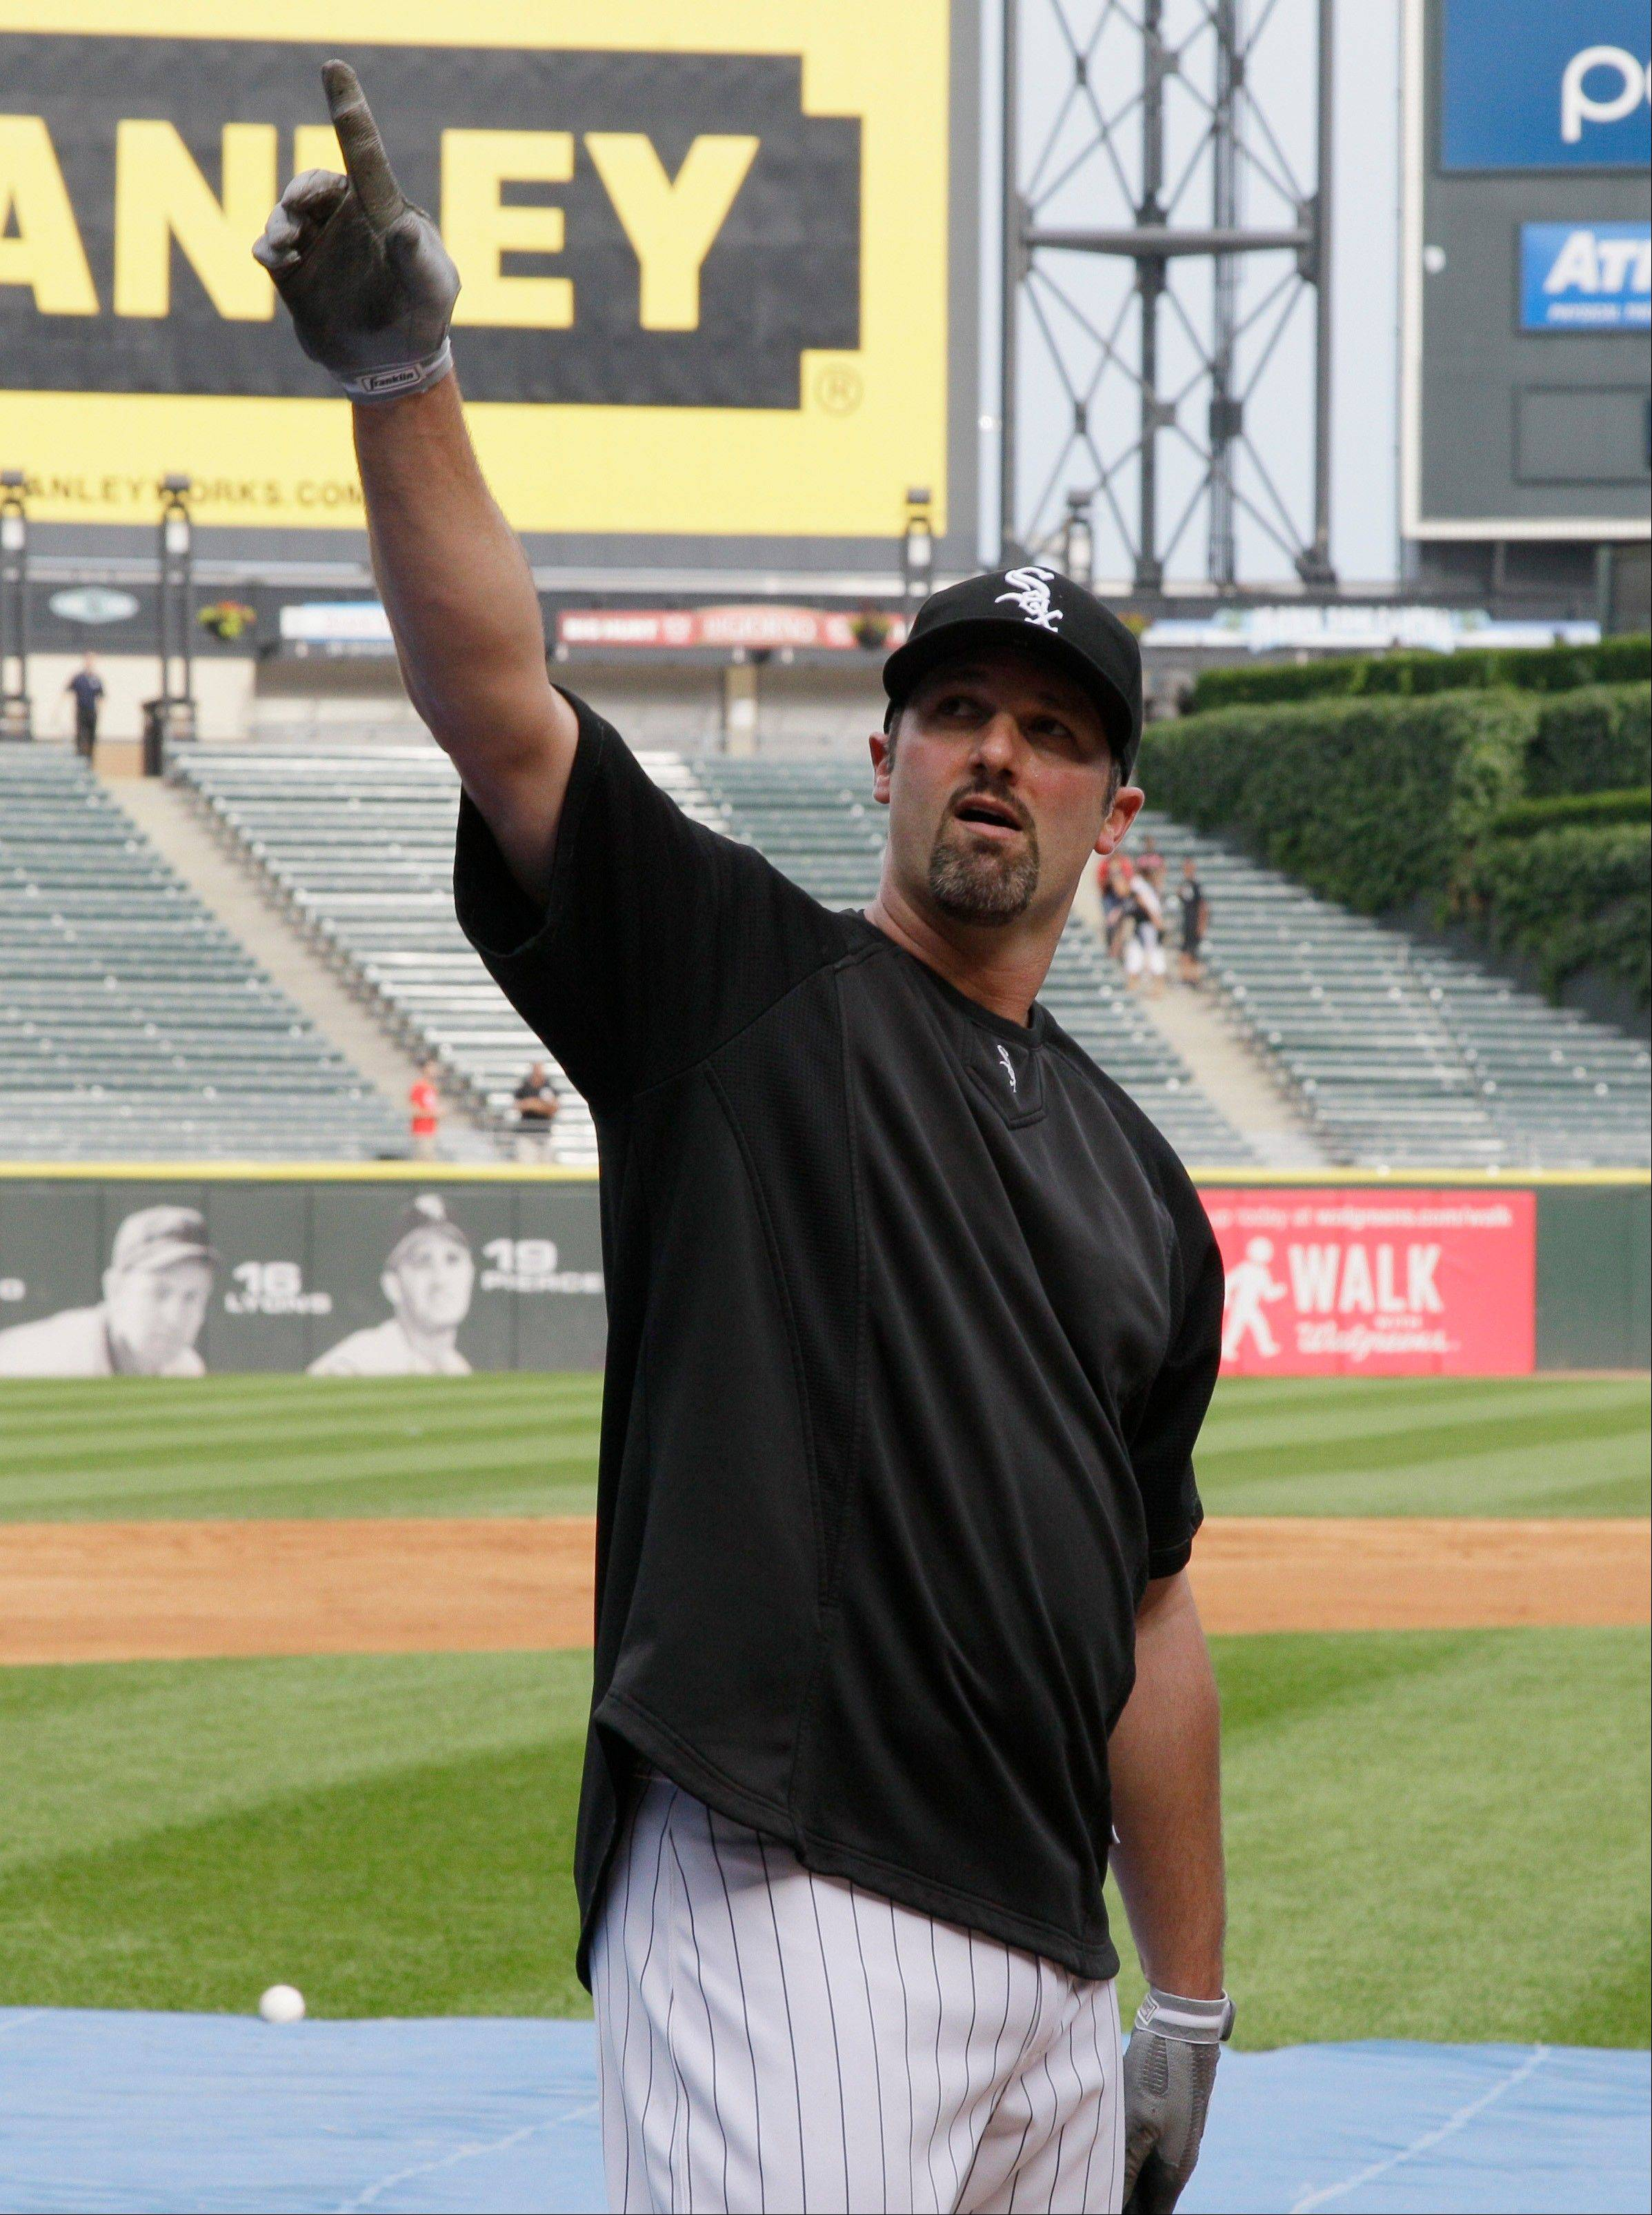 White Sox first baseman Paul Konerko points to fans at U.S. Cellular Field on Thursday after being selected as the final player for the American League all-star team.